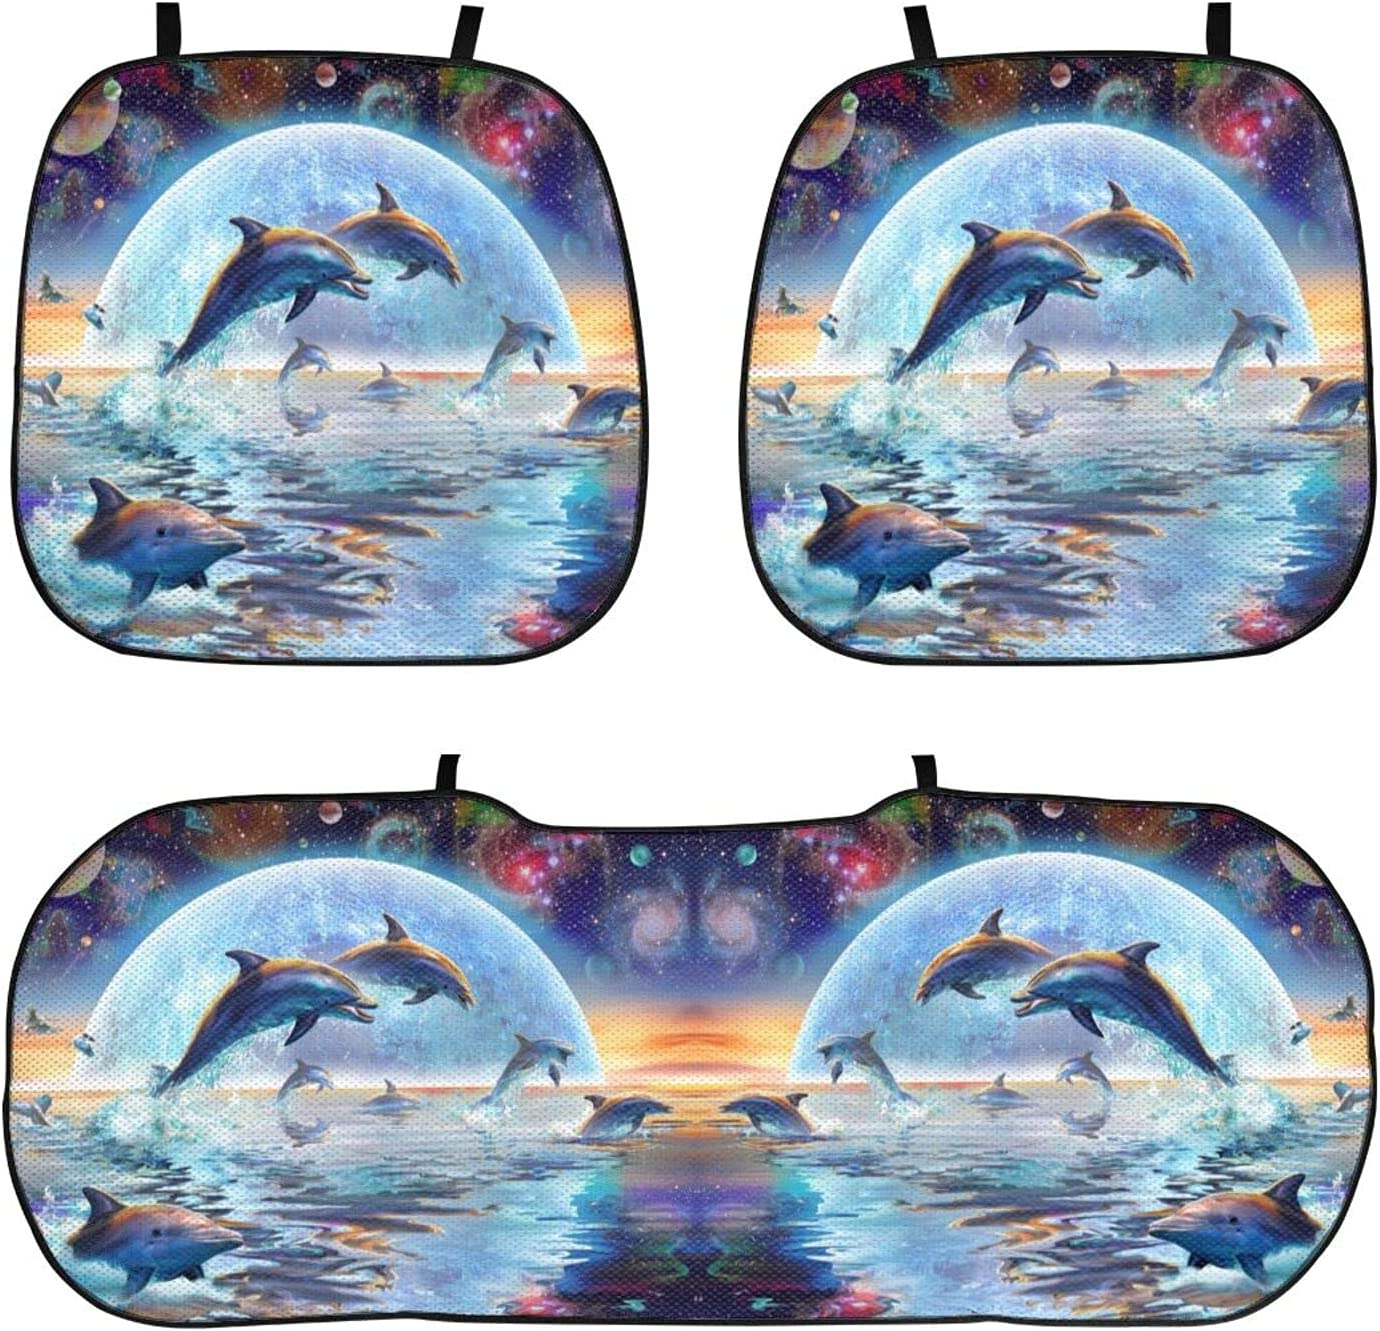 Moon Night Dolphin Galaxy Planet Limited price Car Cash special price M 3D Cushion Seat Universal